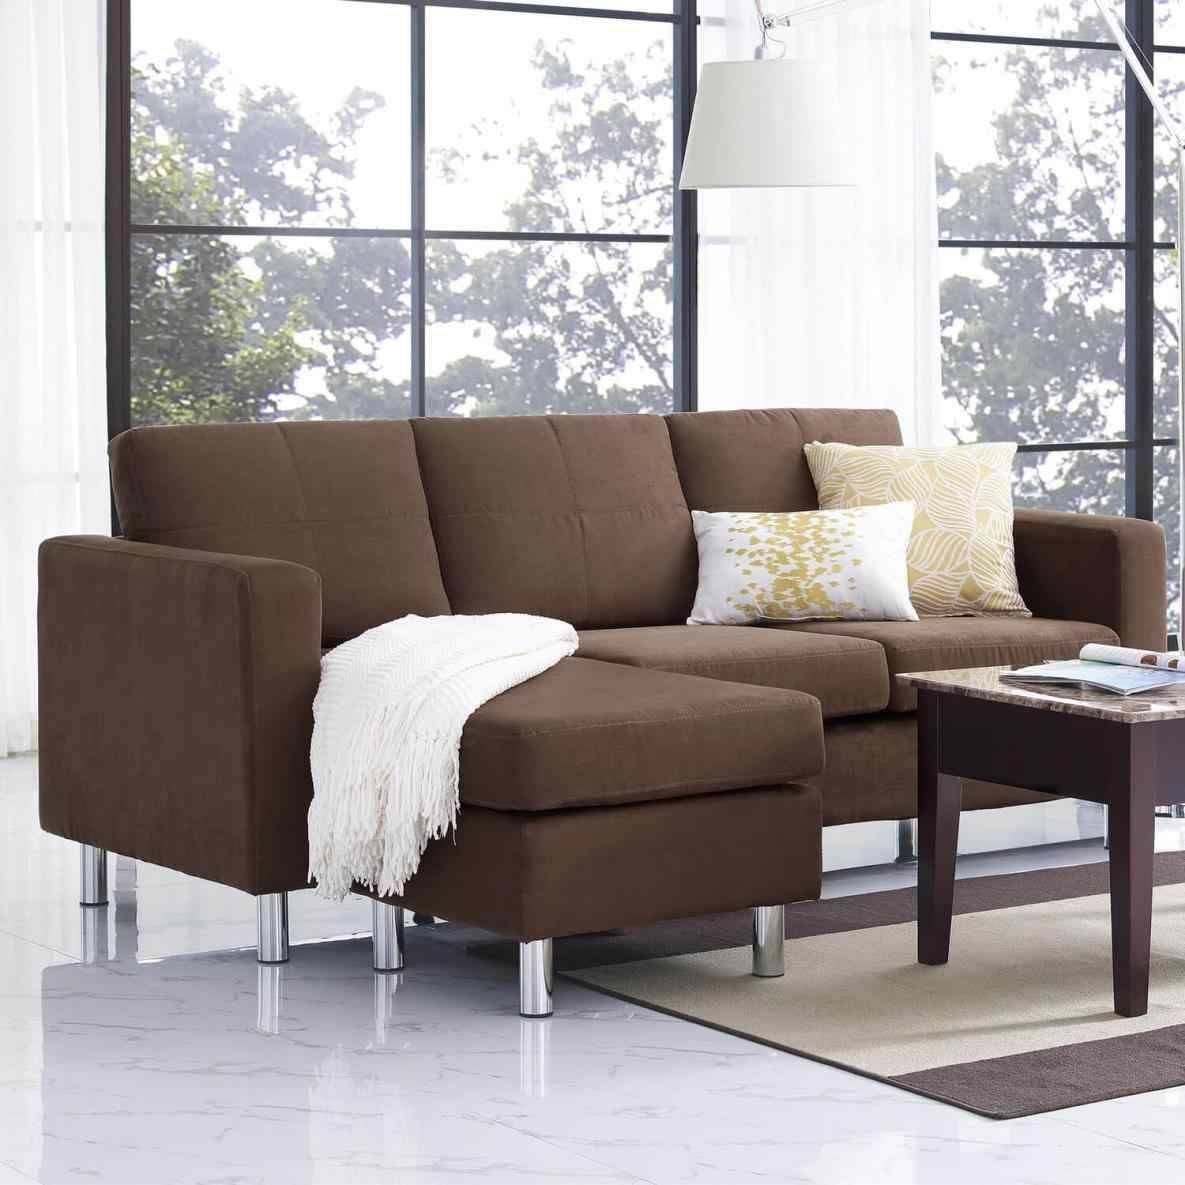 S Sectional Sofa Under 500 Dollars U Fancy Cheap S Sectional